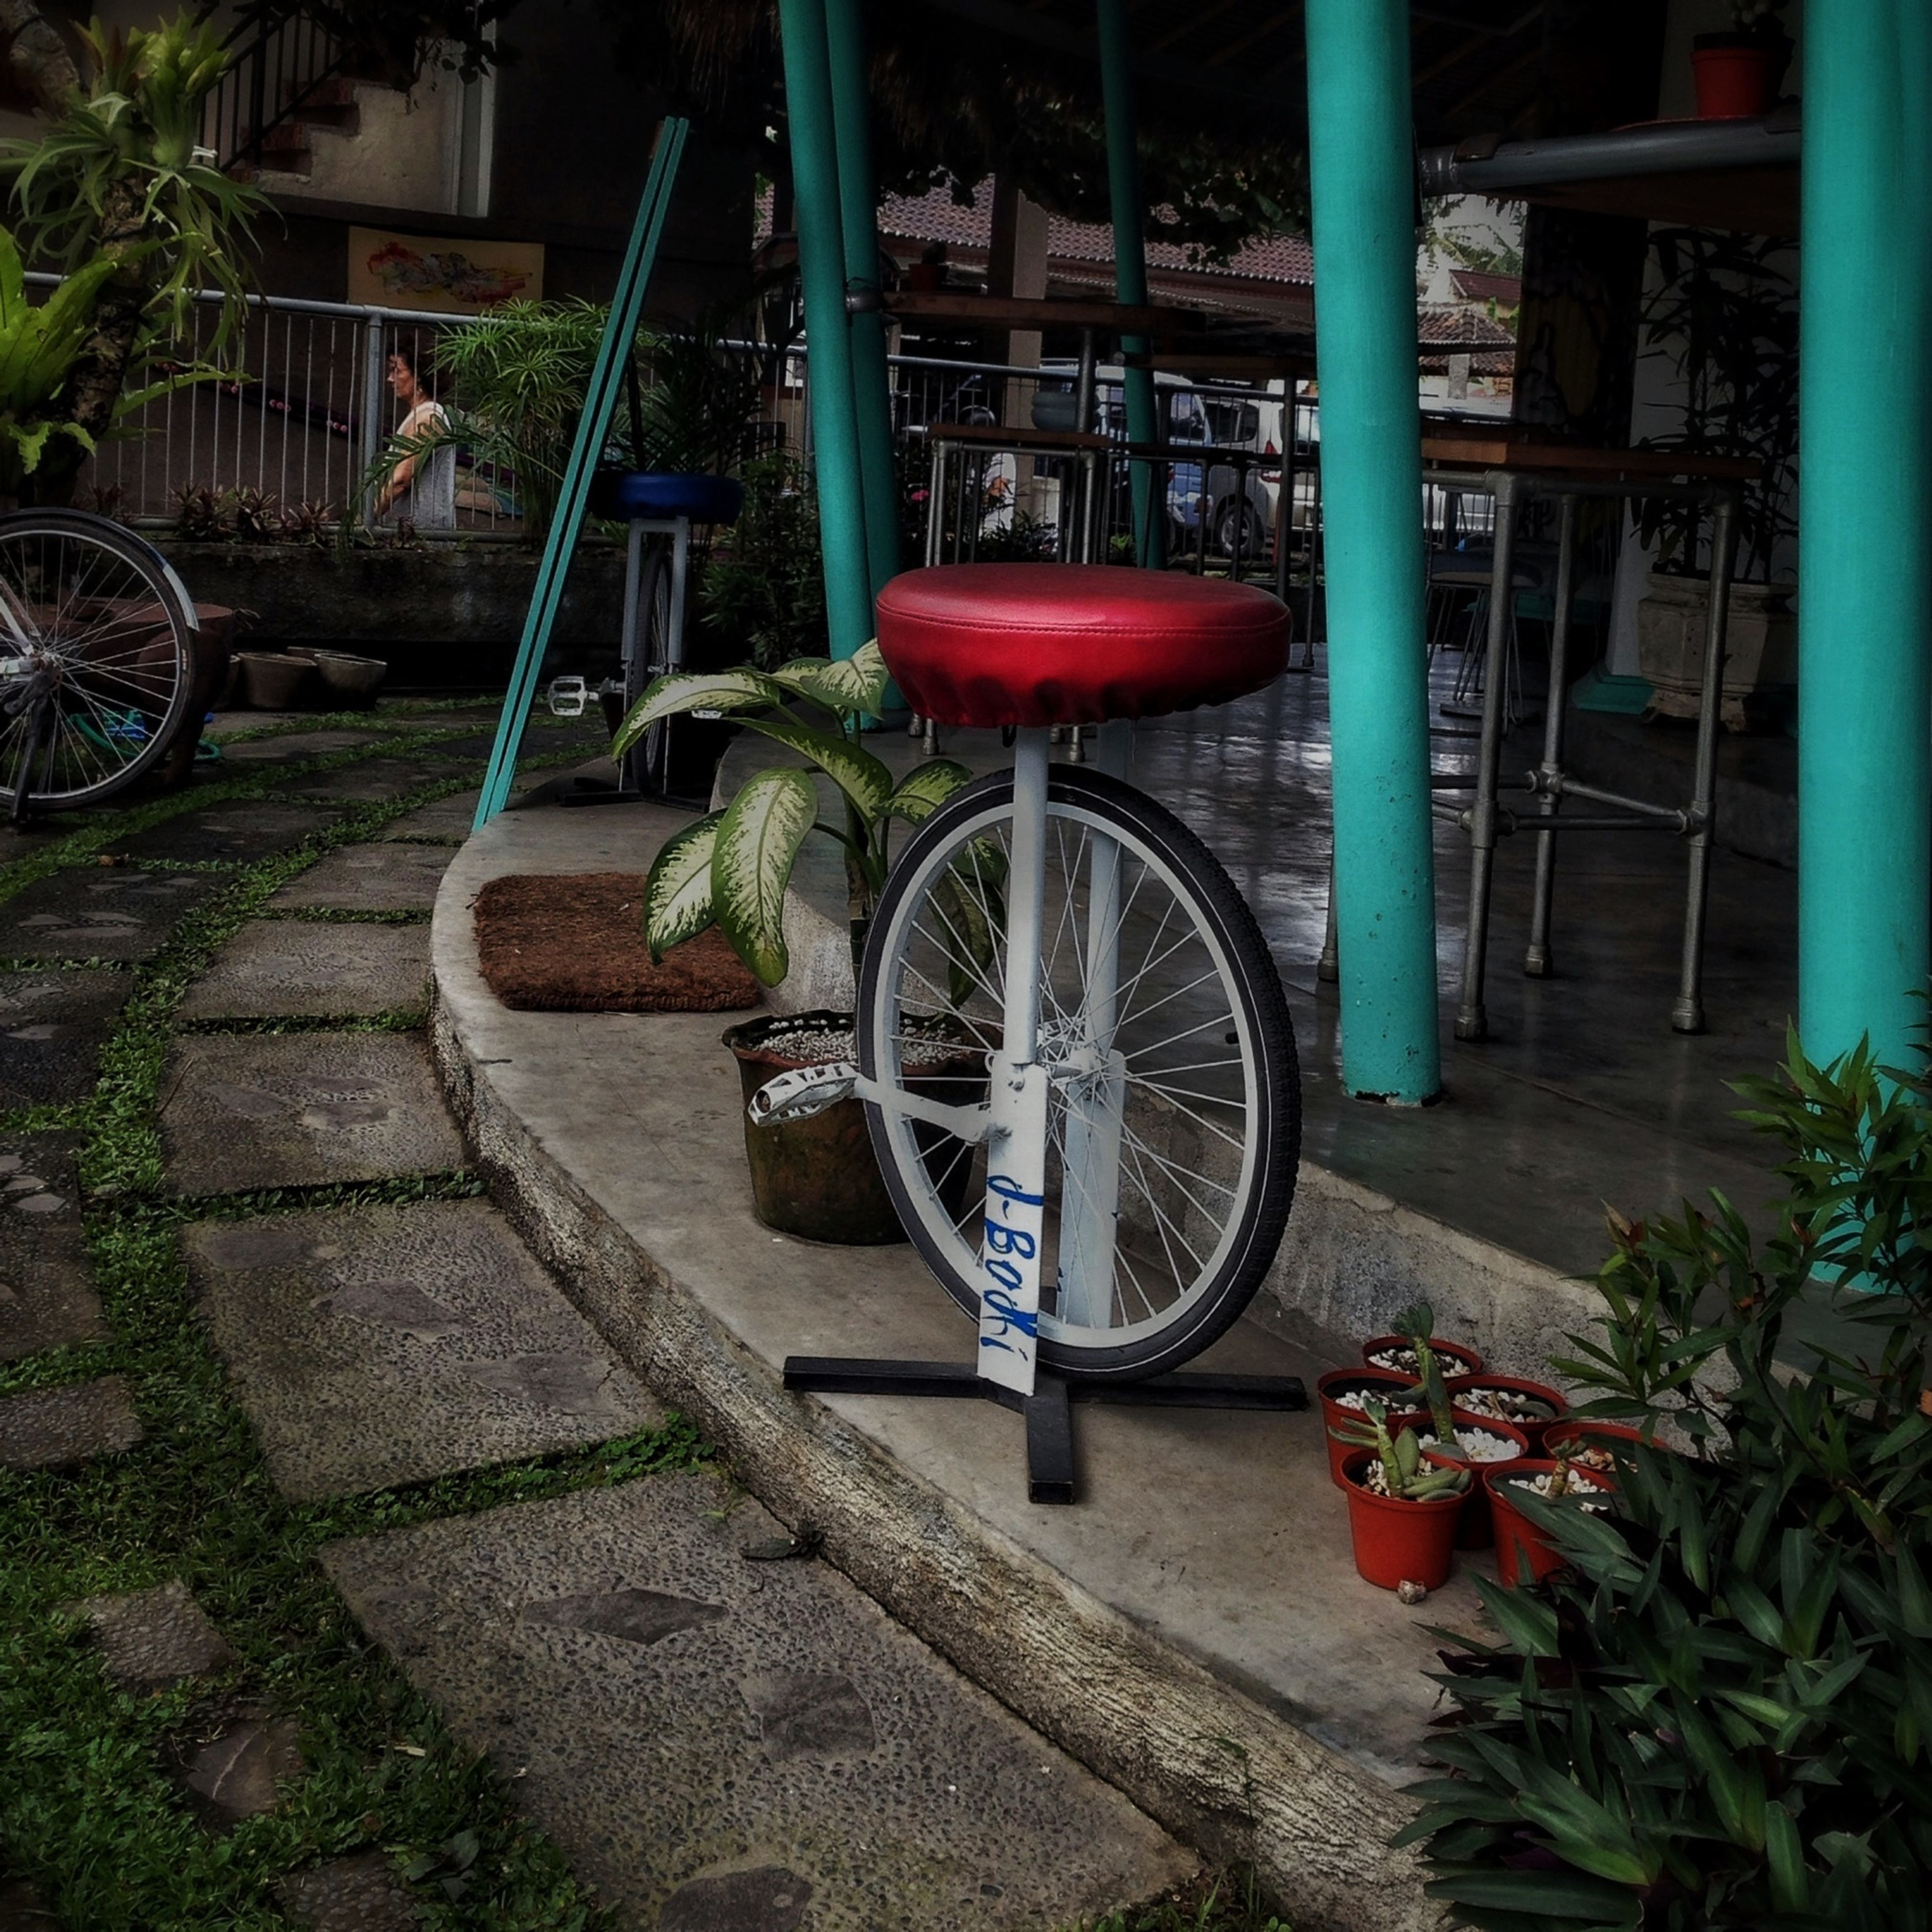 bicycle, plant, transportation, potted plant, mode of transport, stationary, parking, flower, land vehicle, built structure, building exterior, outdoors, growth, no people, day, parked, sidewalk, wheel, architecture, front or back yard